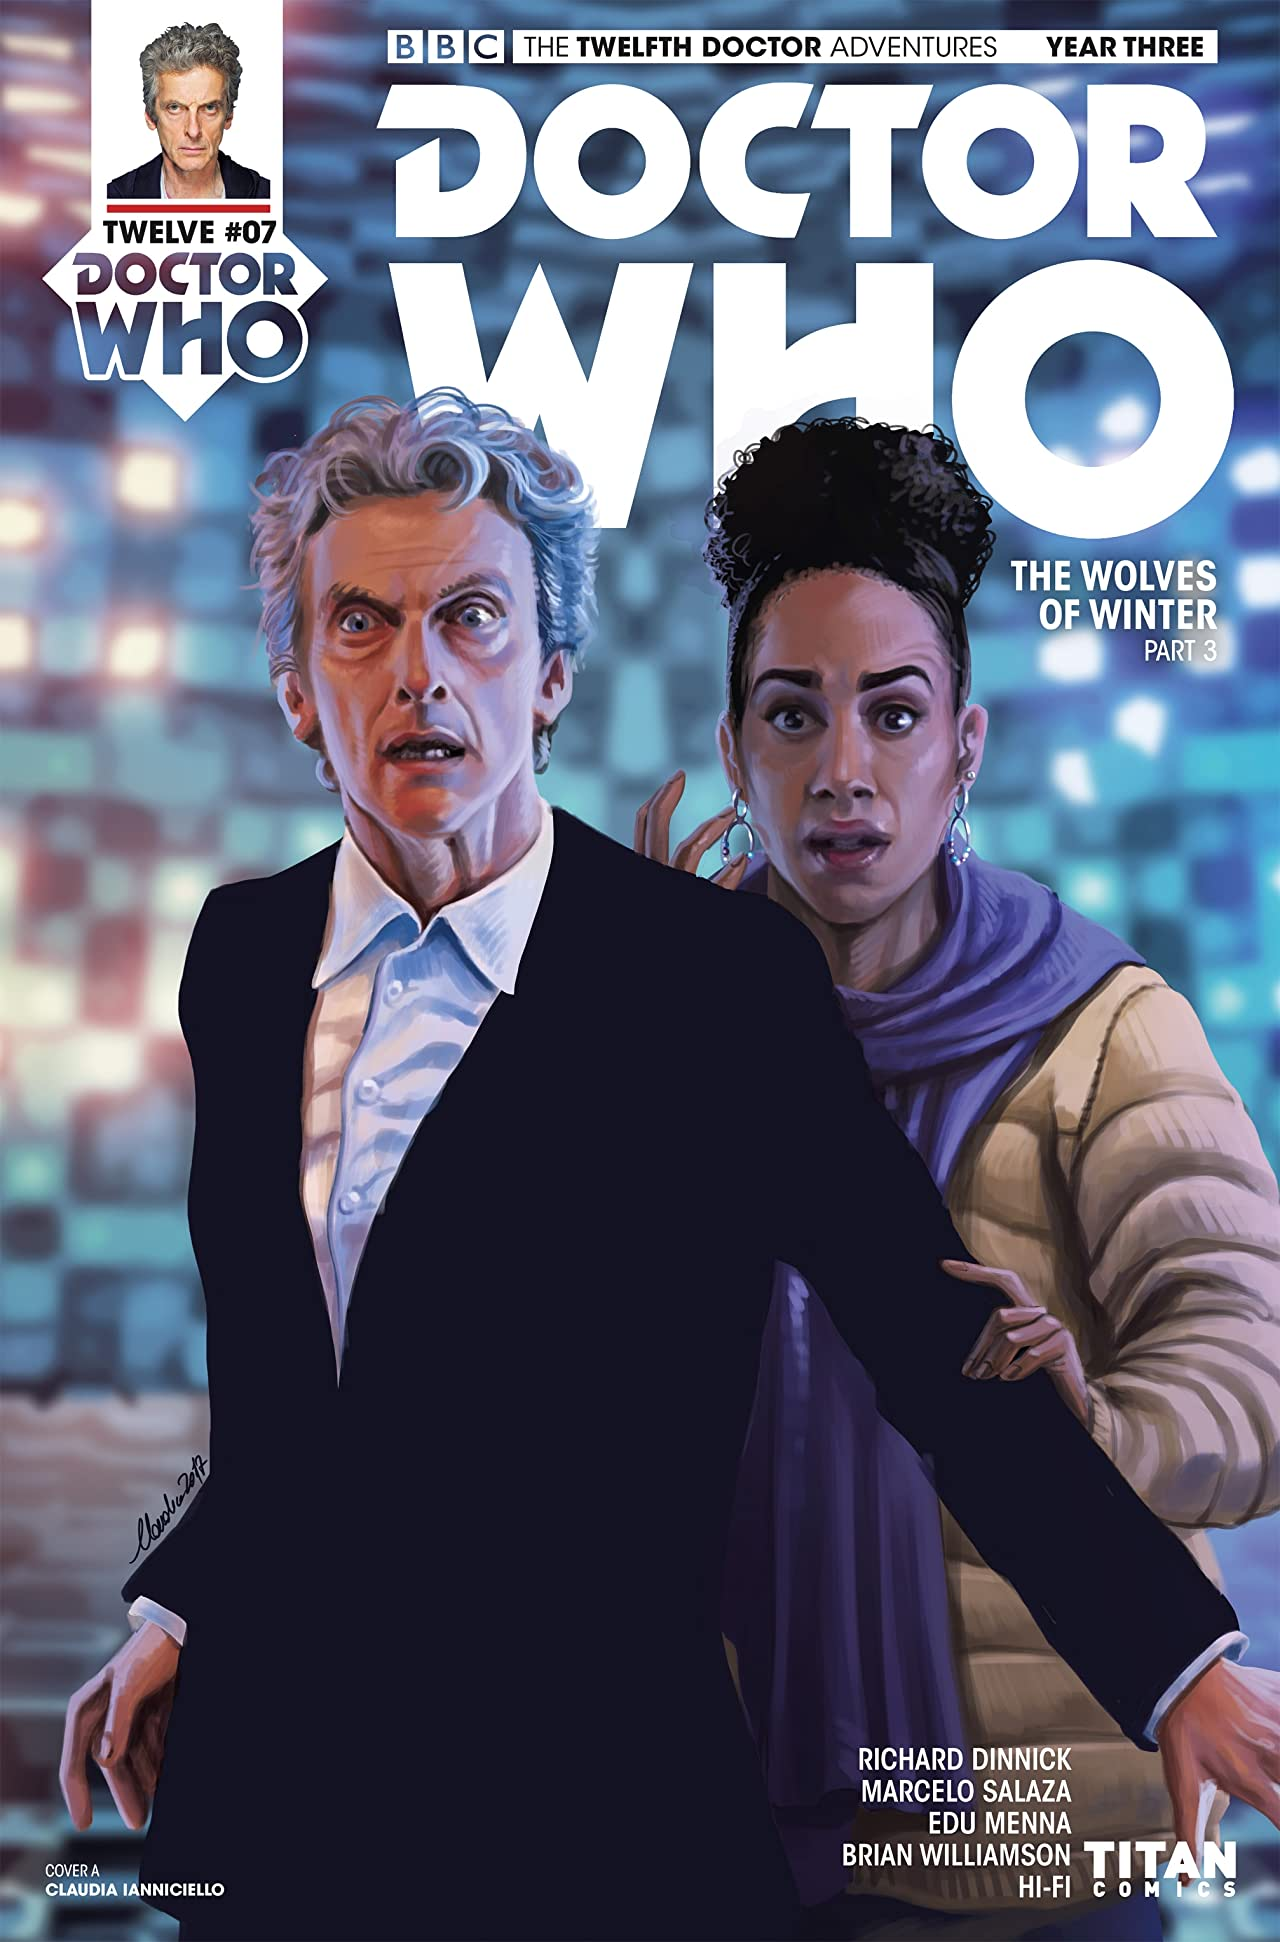 Doctor Who: The Twelfth Doctor #3.7